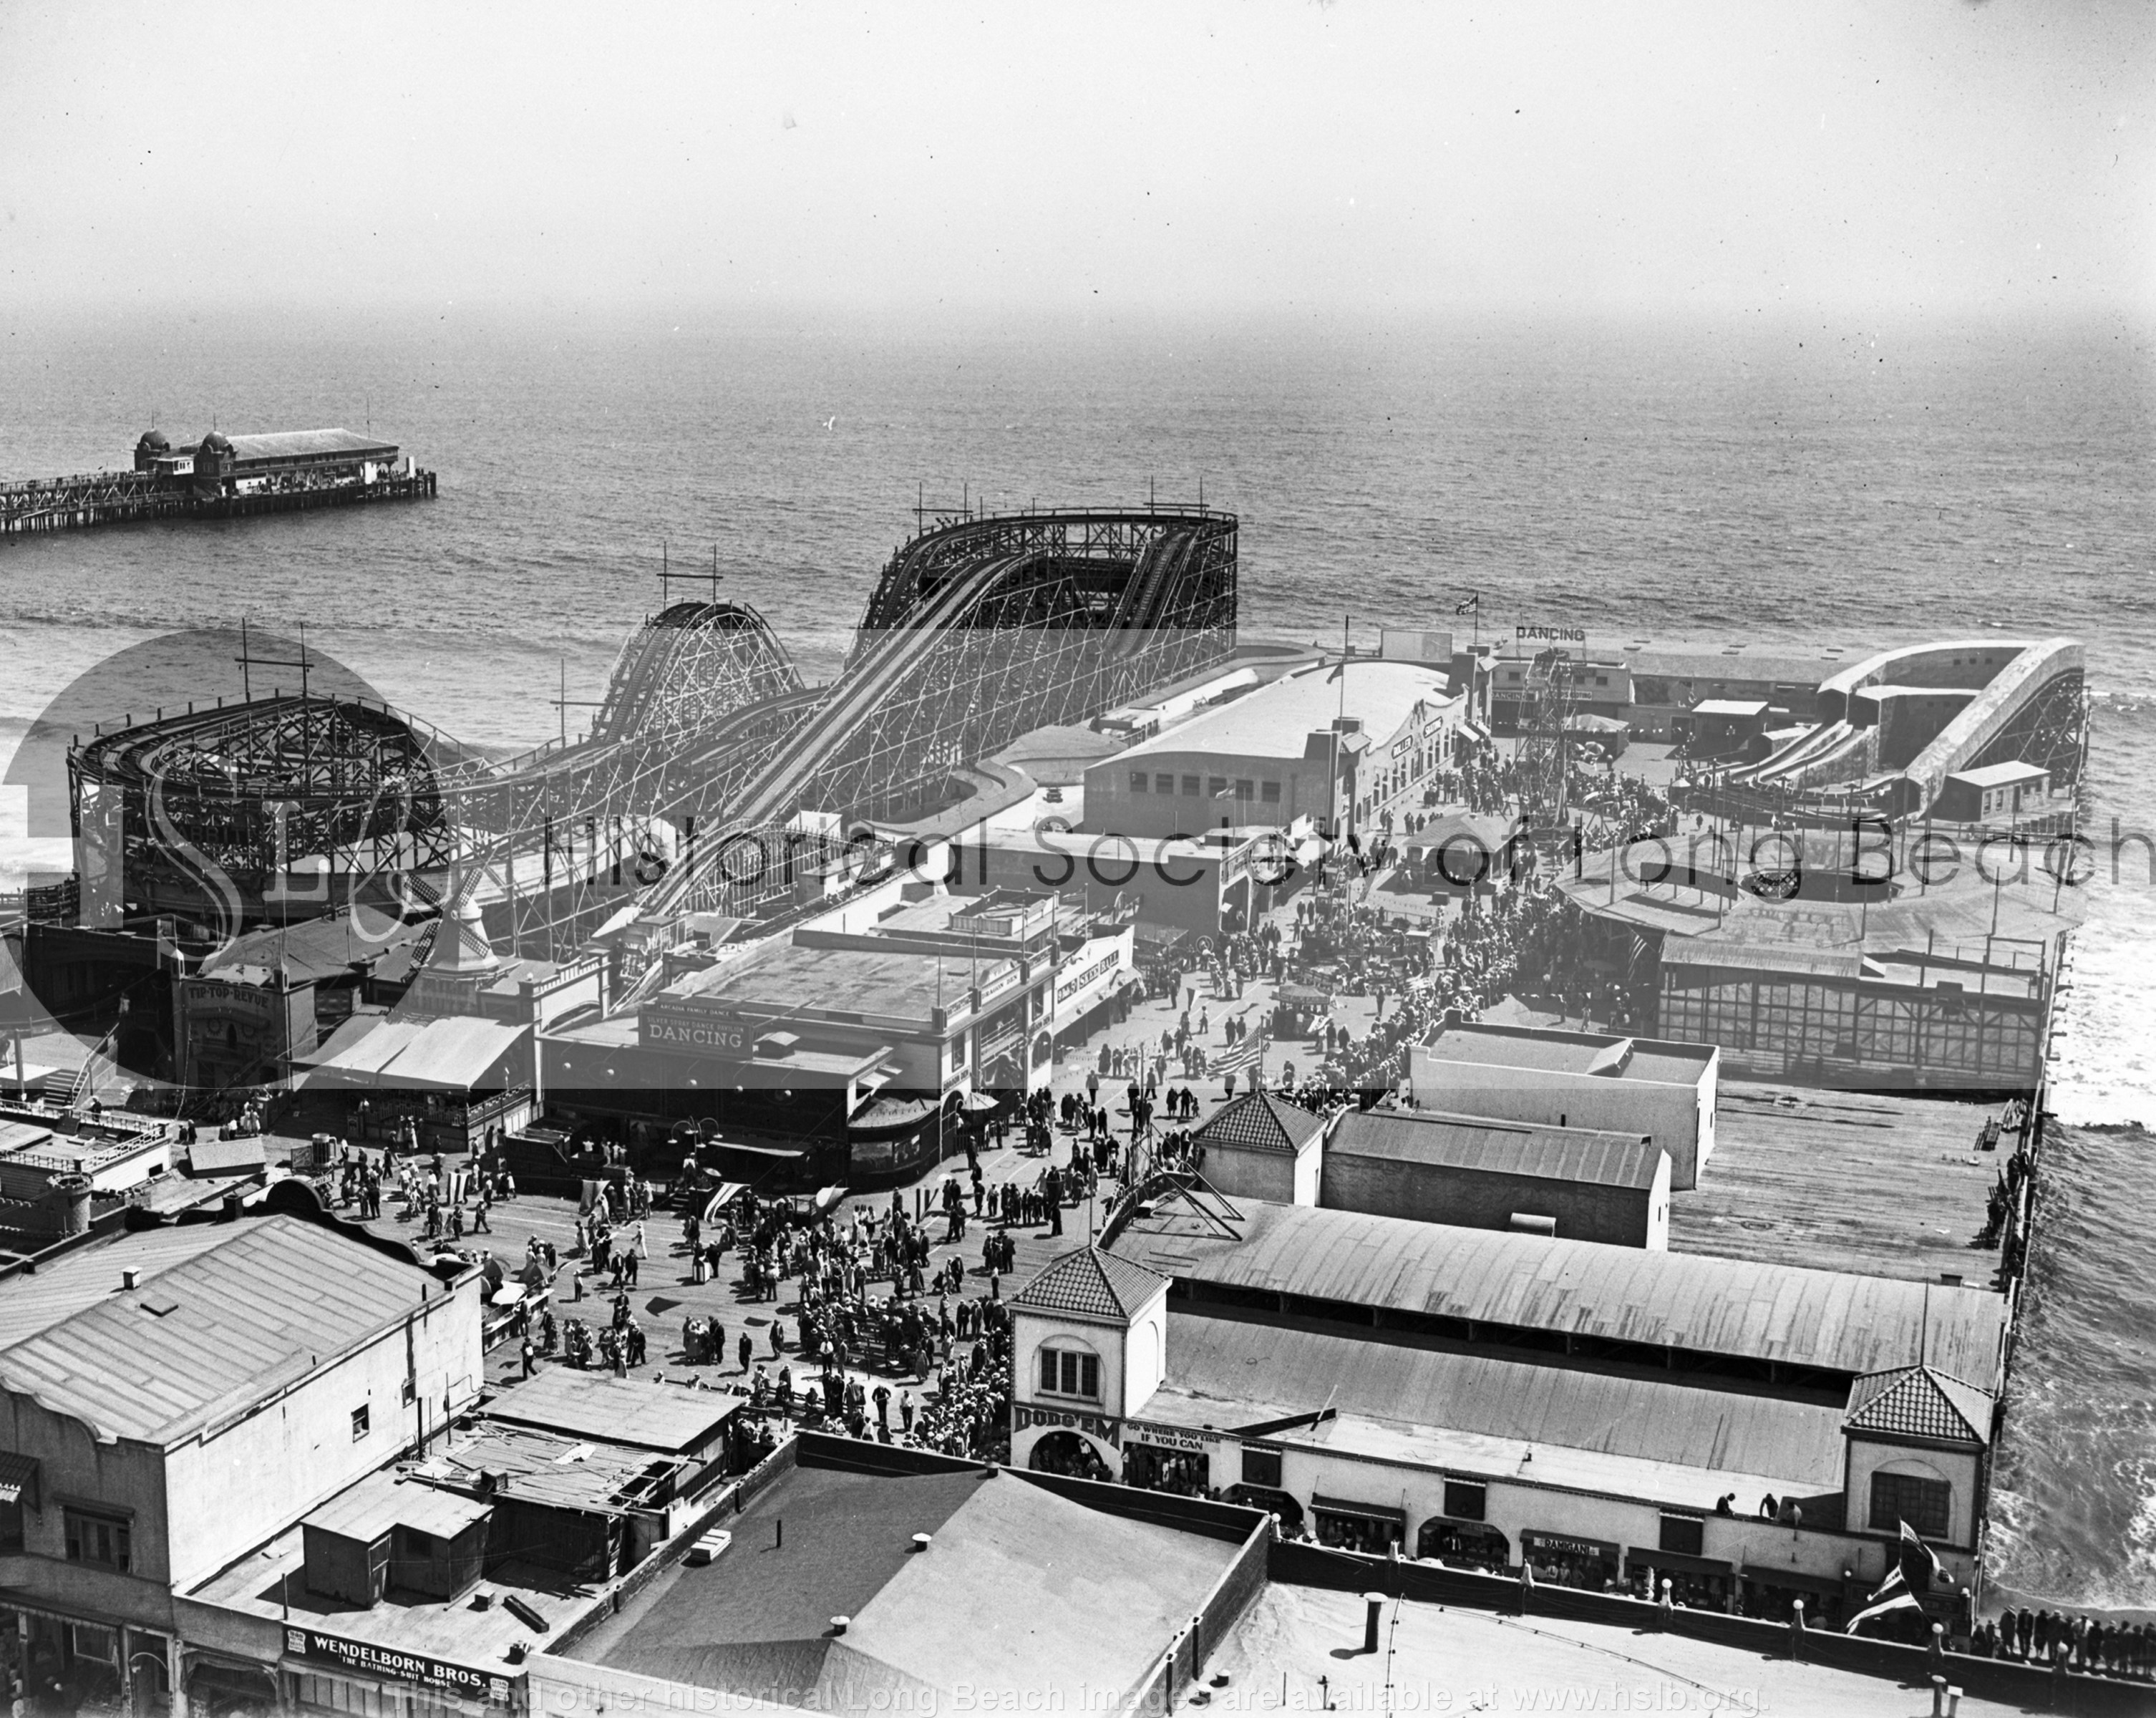 Silver Spray Pier, 1924 vintage photograph